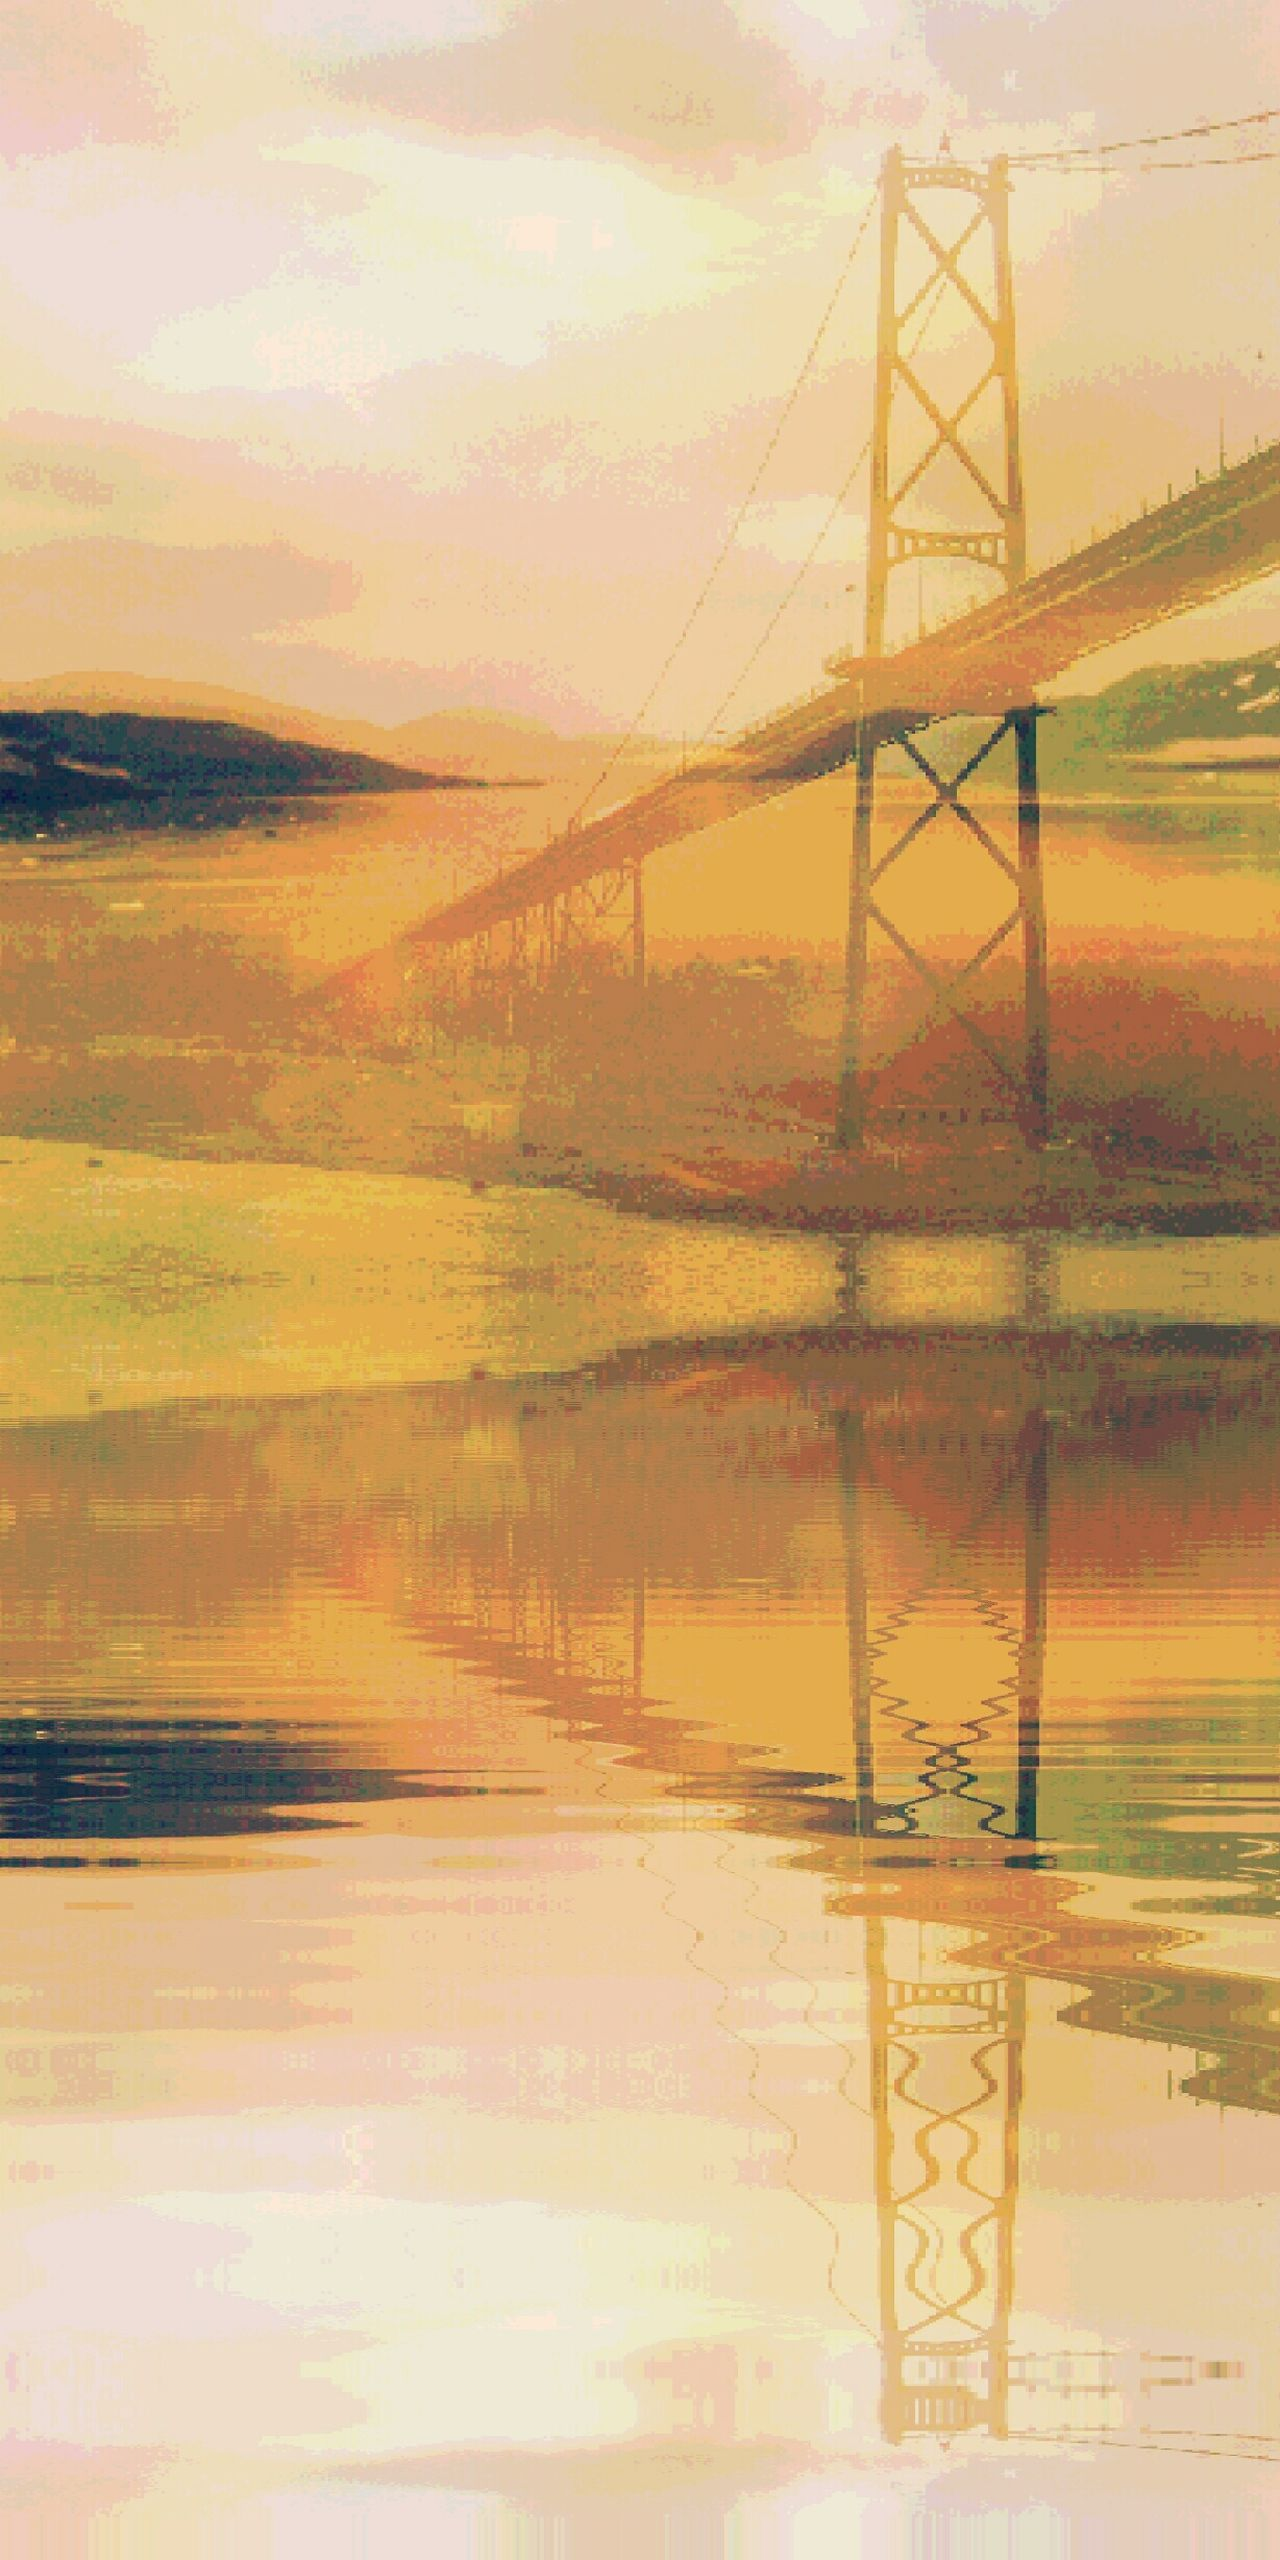 Bridges Overpass Underpass Water Reflections Overlays Landscape Layers Bright Peach Light Water Ripples Effect